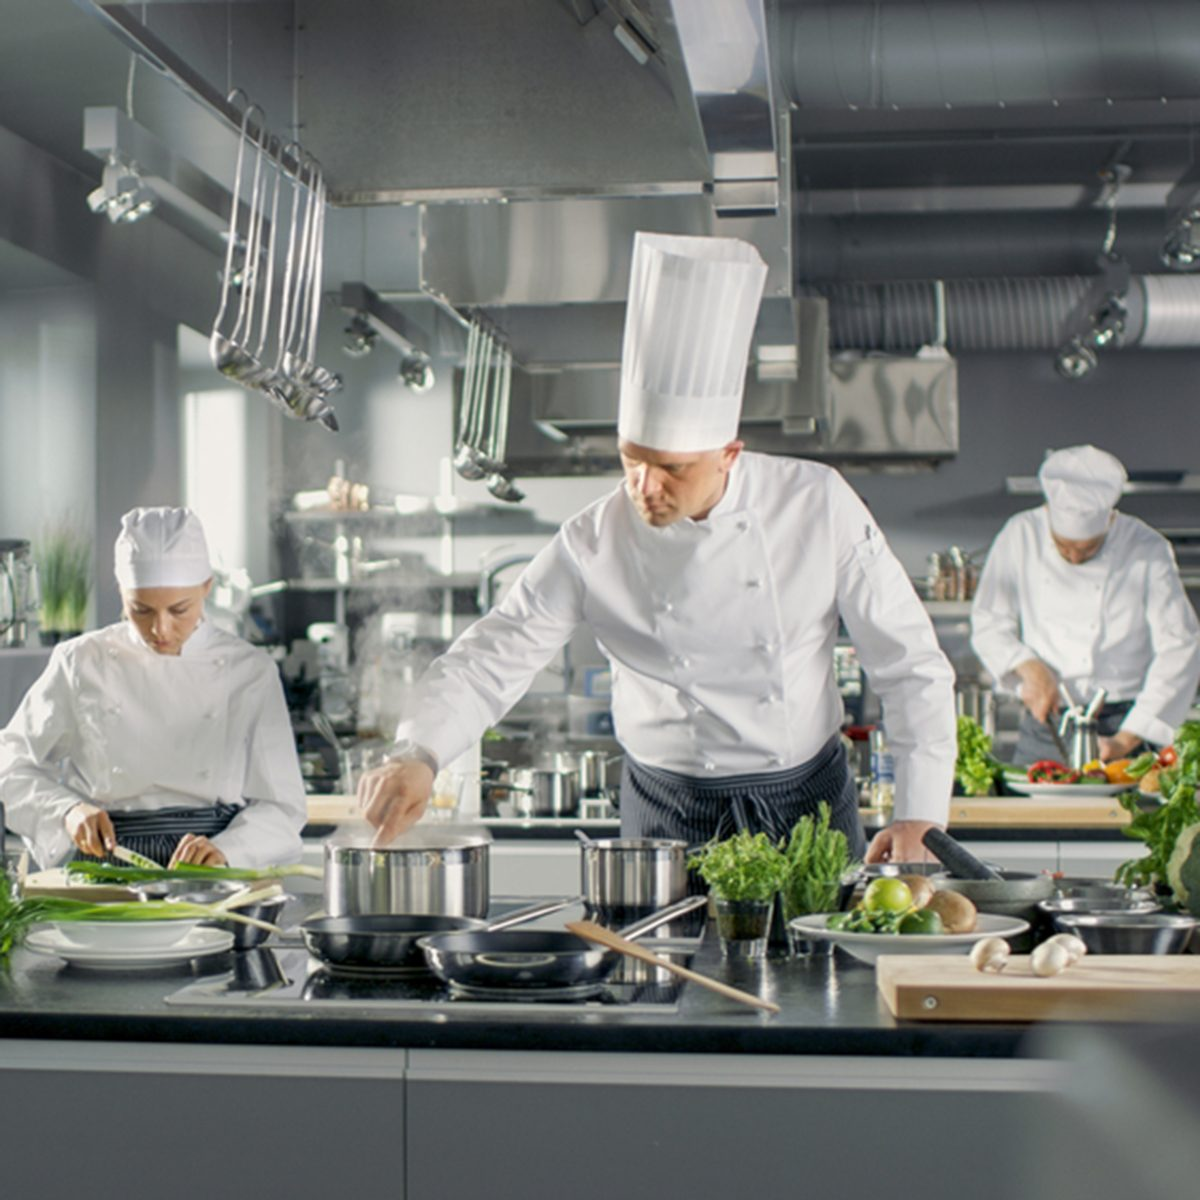 Famous Chef Works in a Big Restaurant Kitchen with His Help.